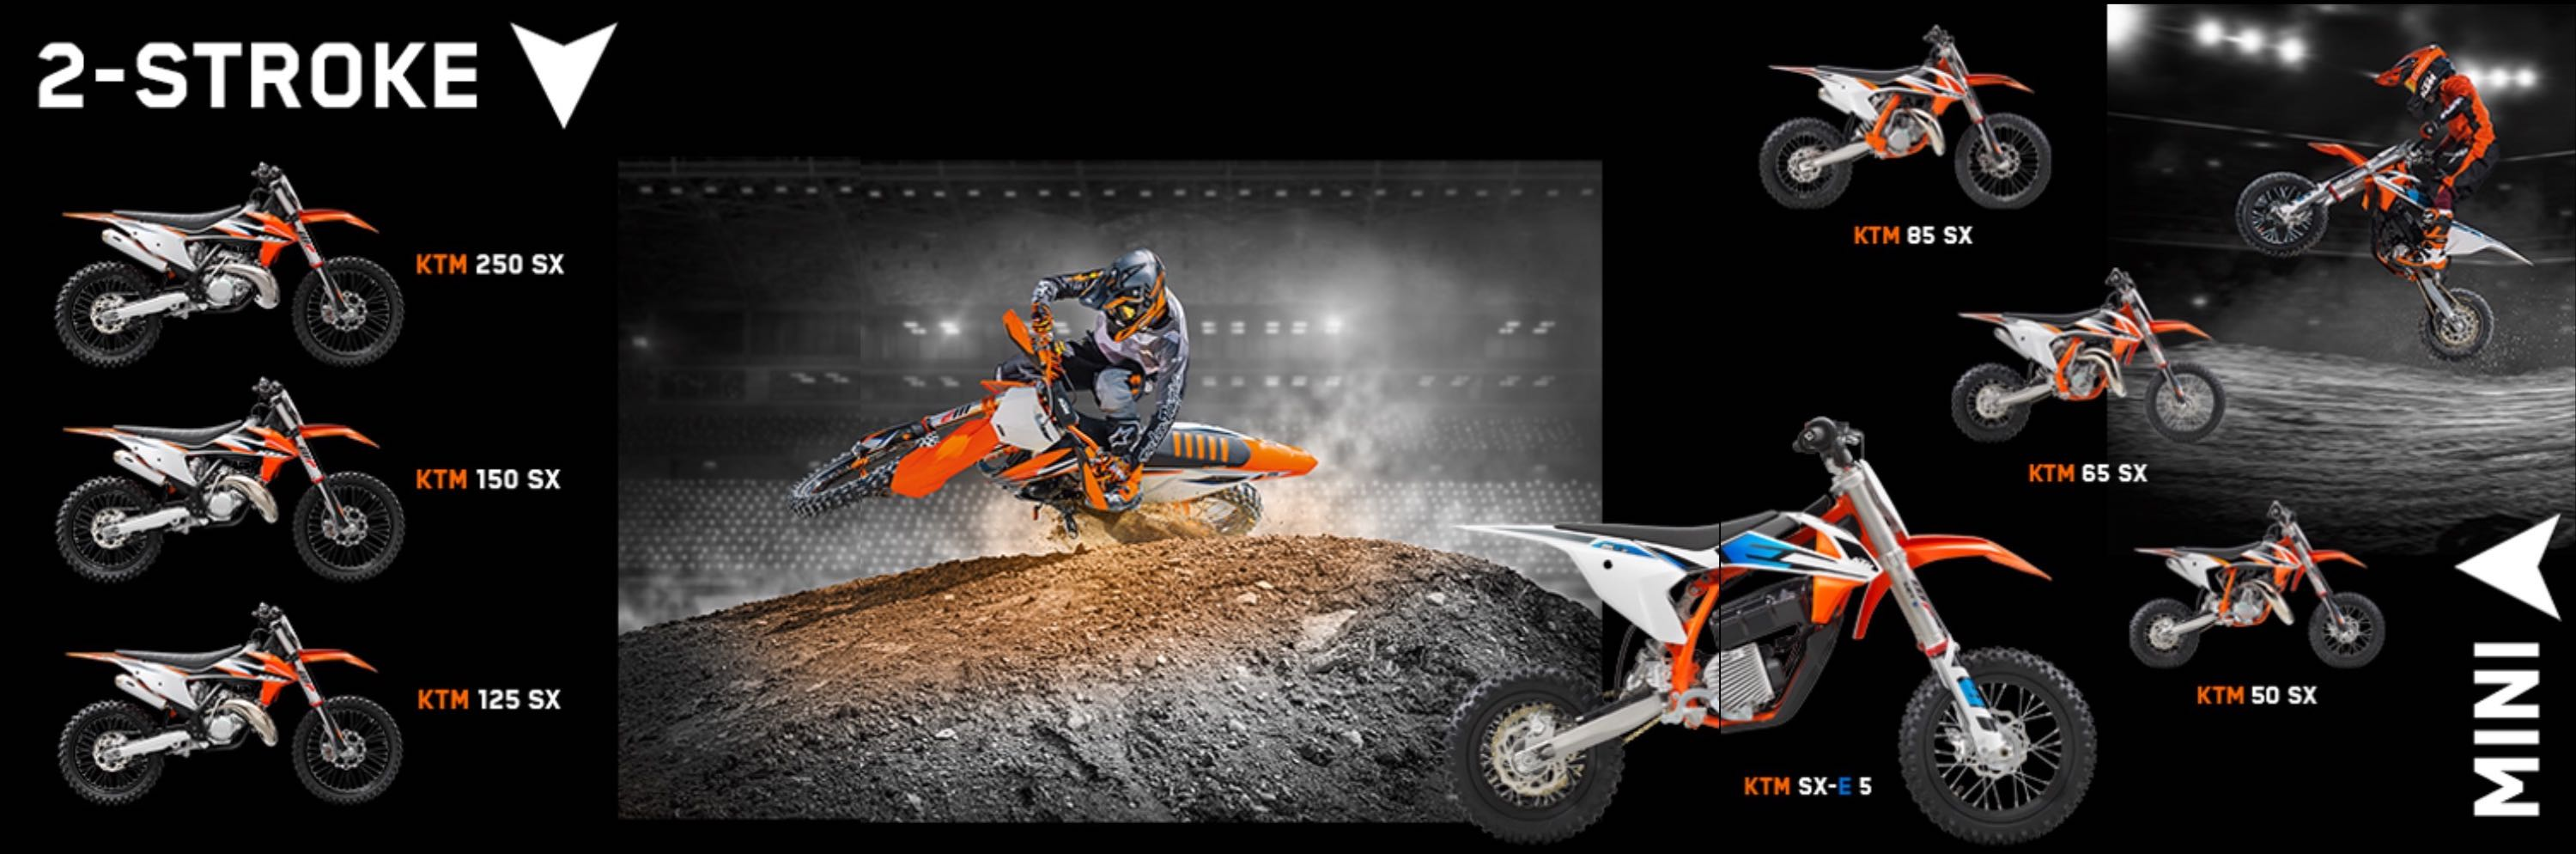 Introducing the 2021 KTM 2 Stroke and Mini Motocross Range